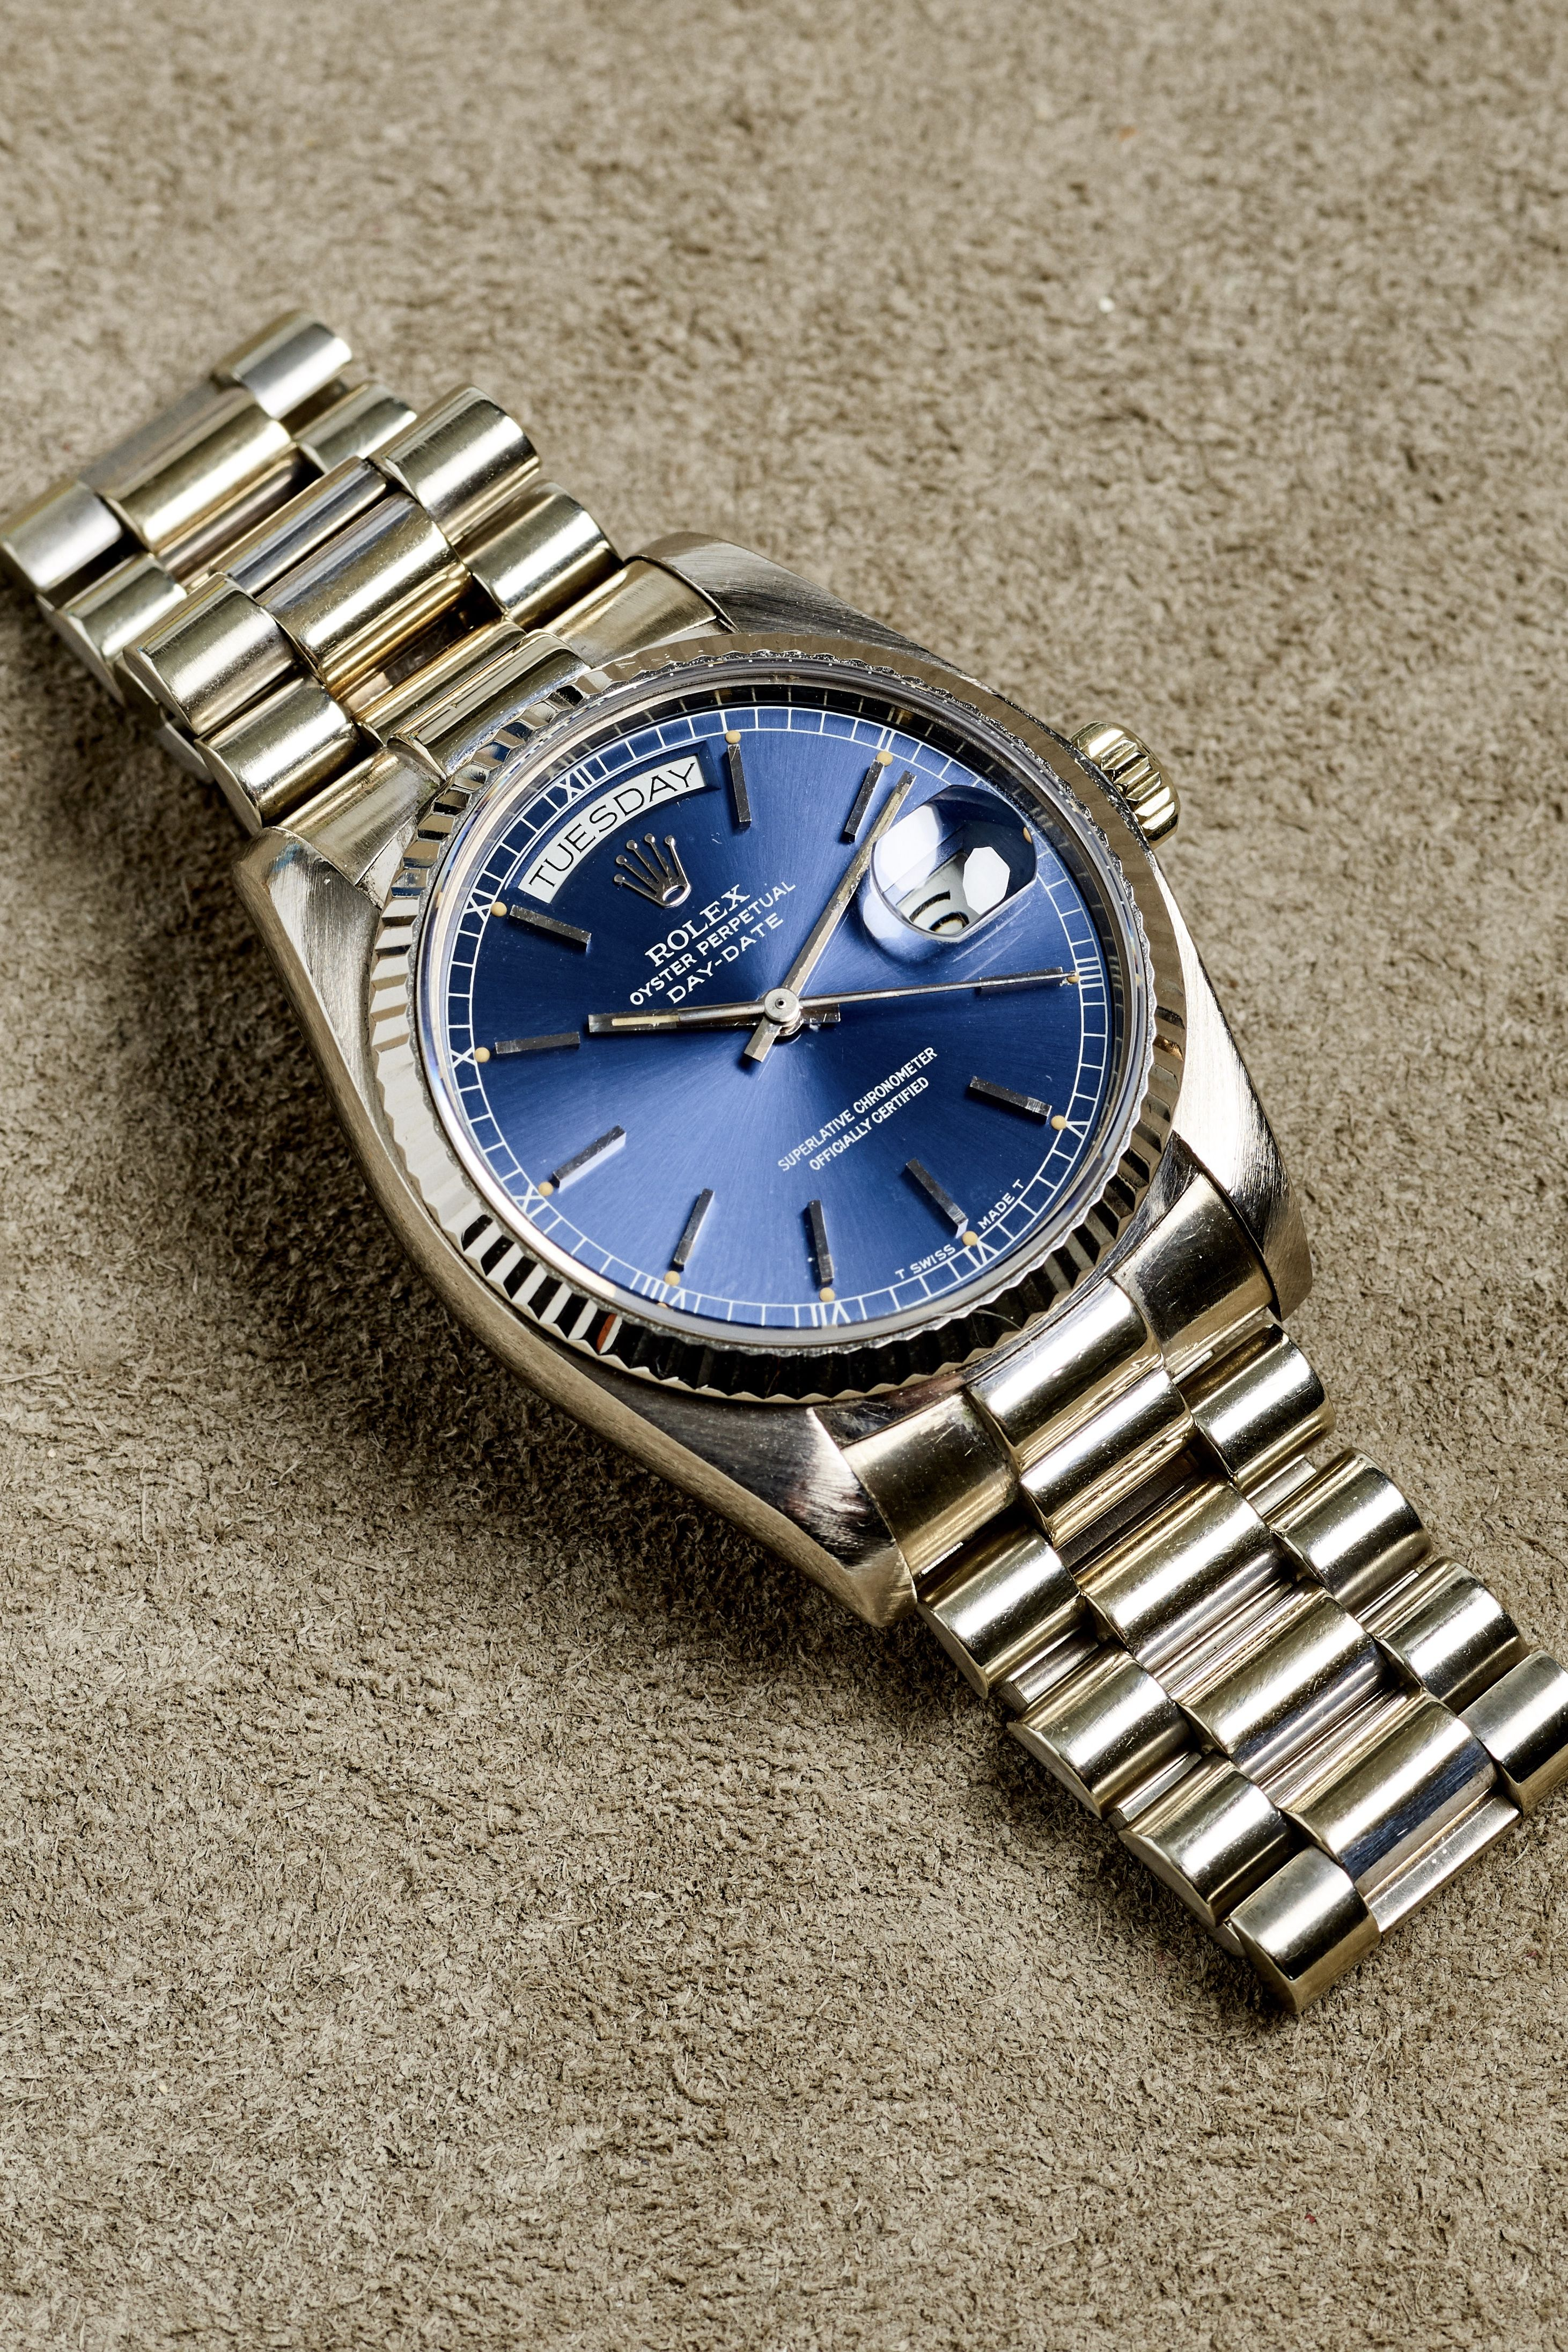 63ec9bce5 This Rolex 18K white gold day-date president watch features a striking  cobalt blue dial with stick hour markers and a roman numeral minute track.